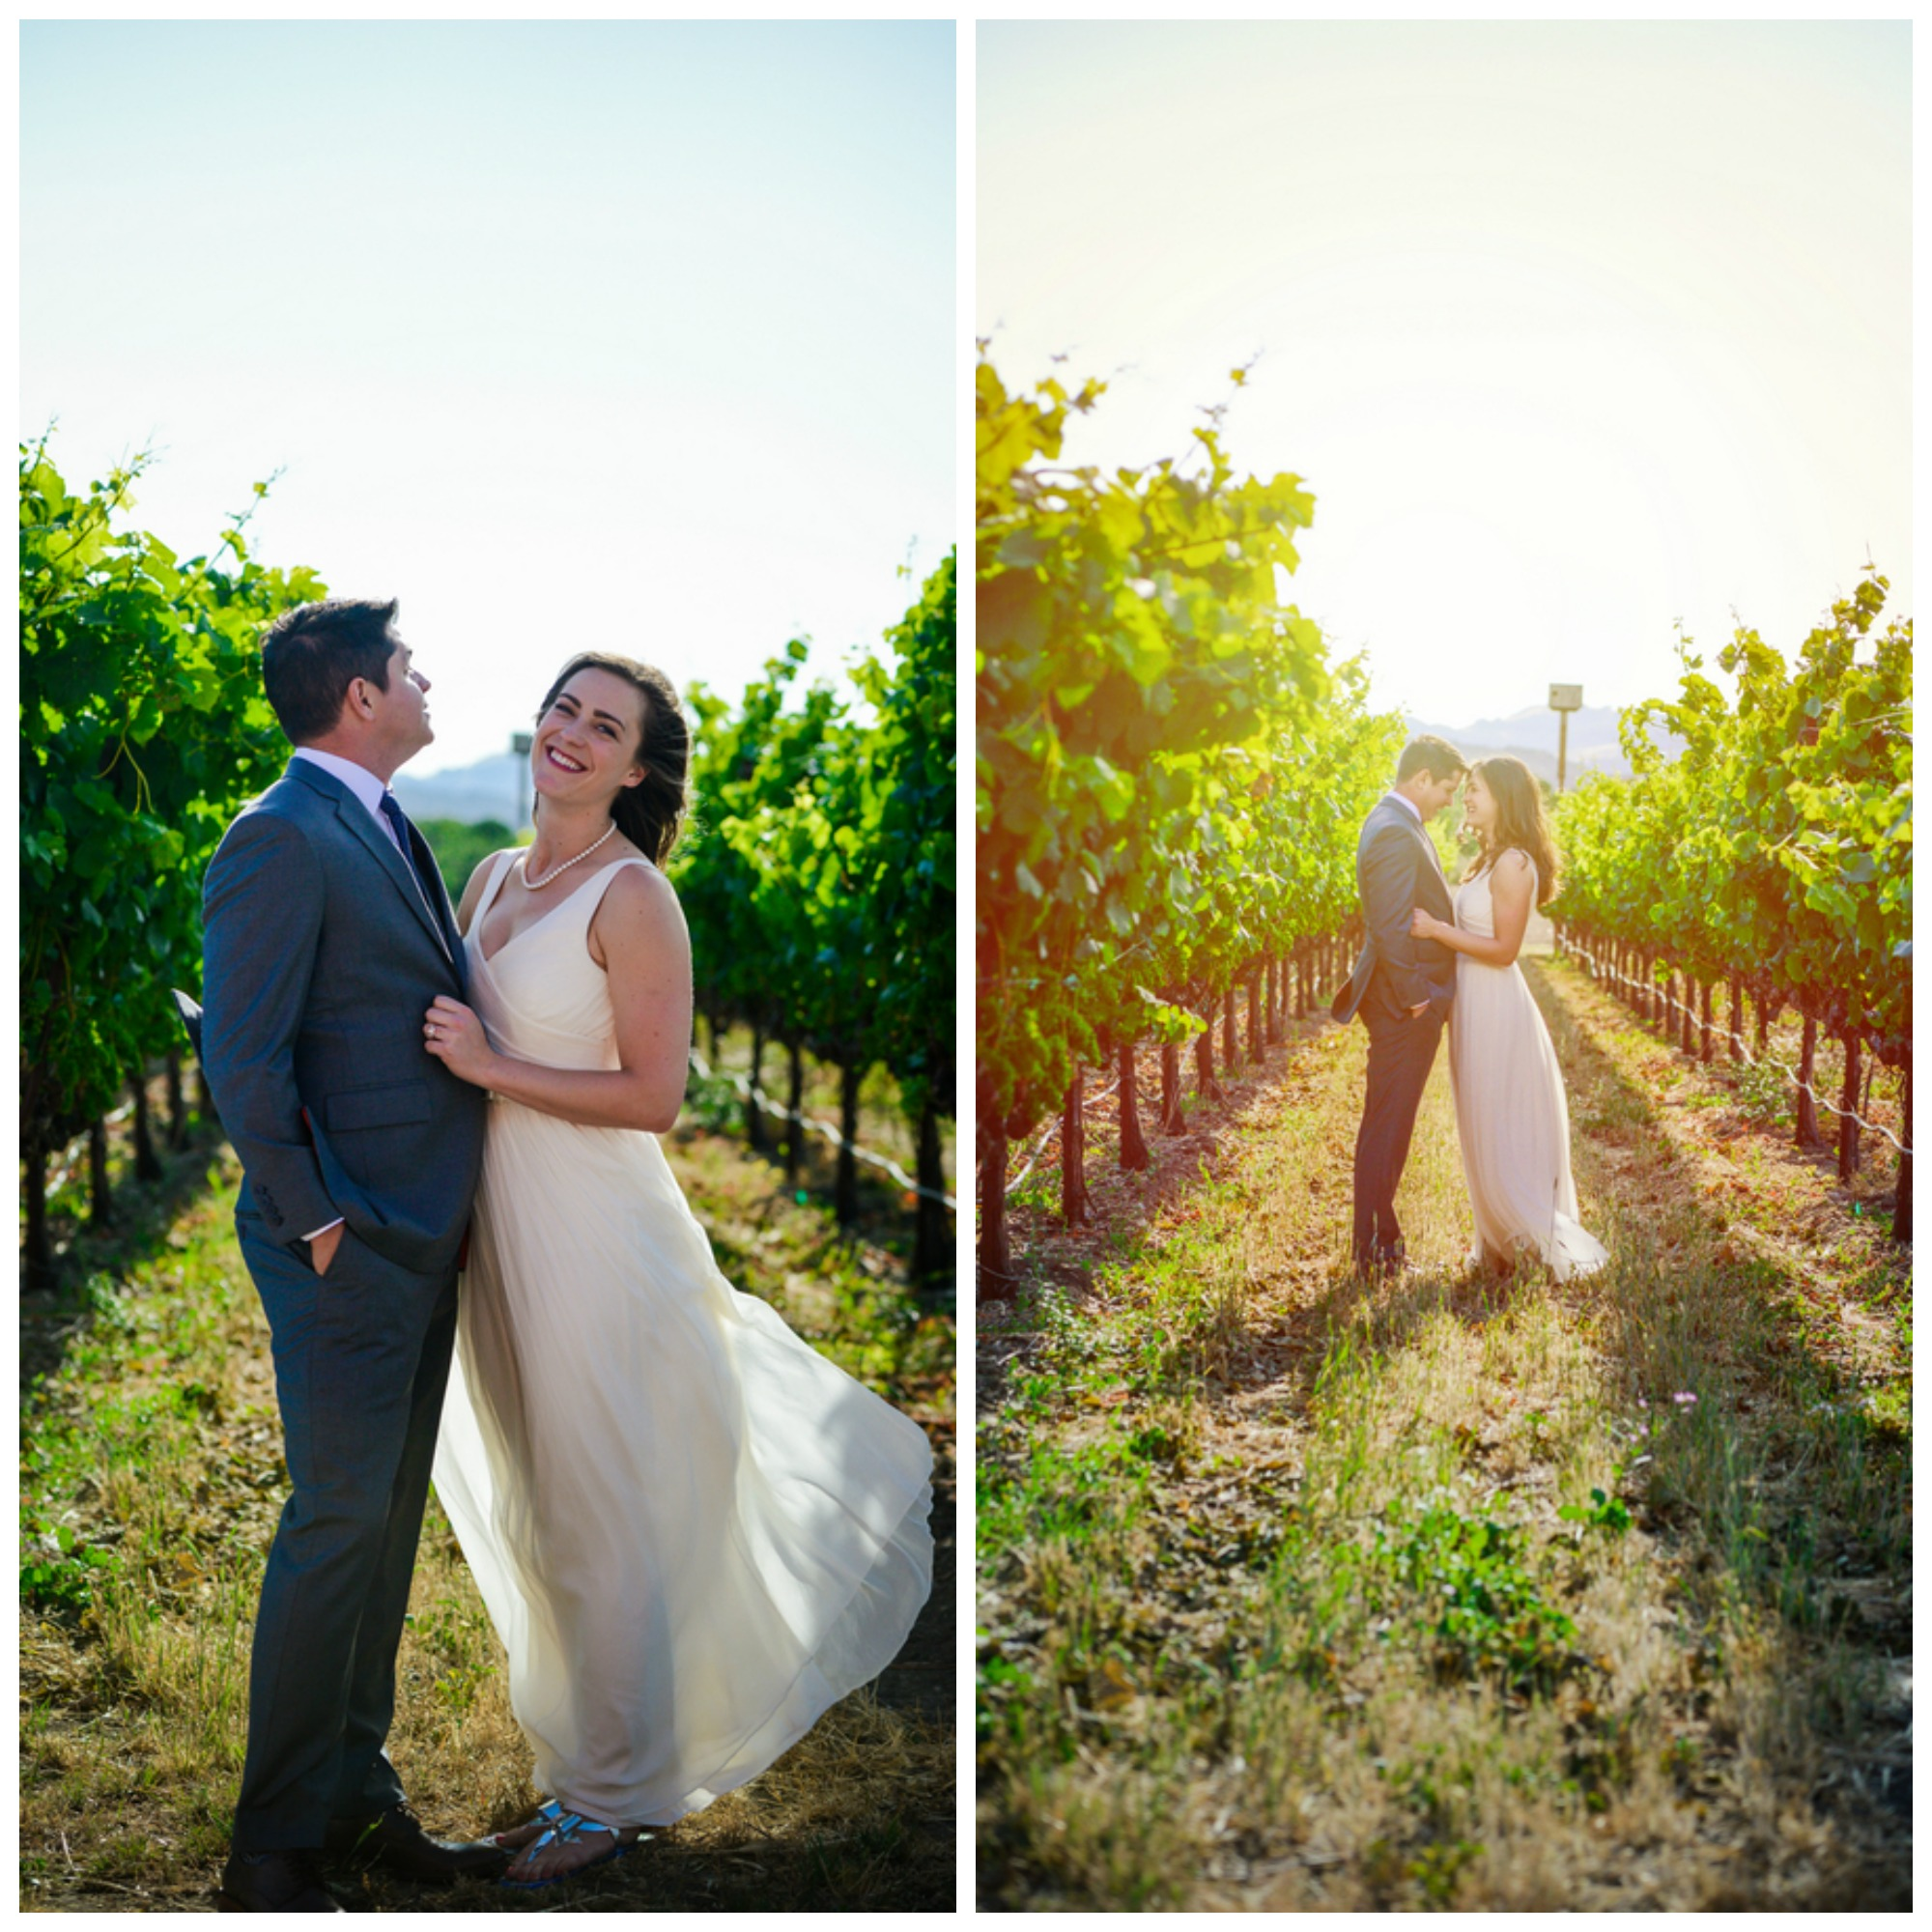 thecoordinatedbrideblog.com-Pitts_Pitts_Kolby_Skidmore_Photography_AS211